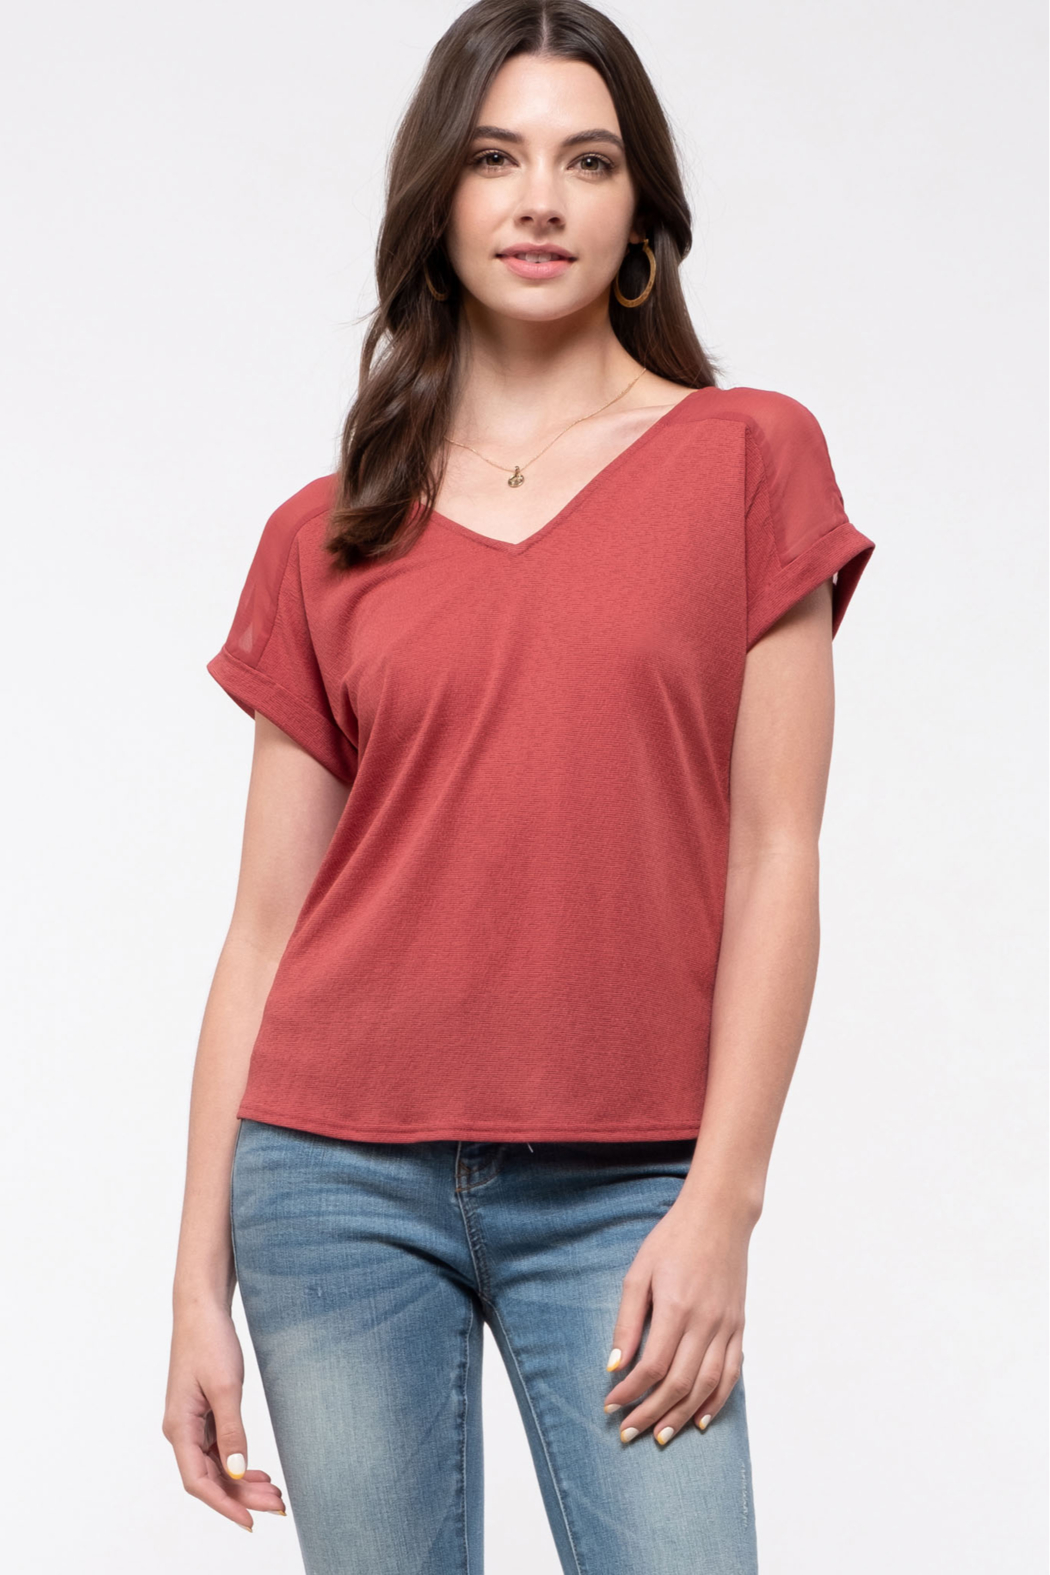 blu pepper  V-neck Tee with Lace Back Detail - Front Full Image